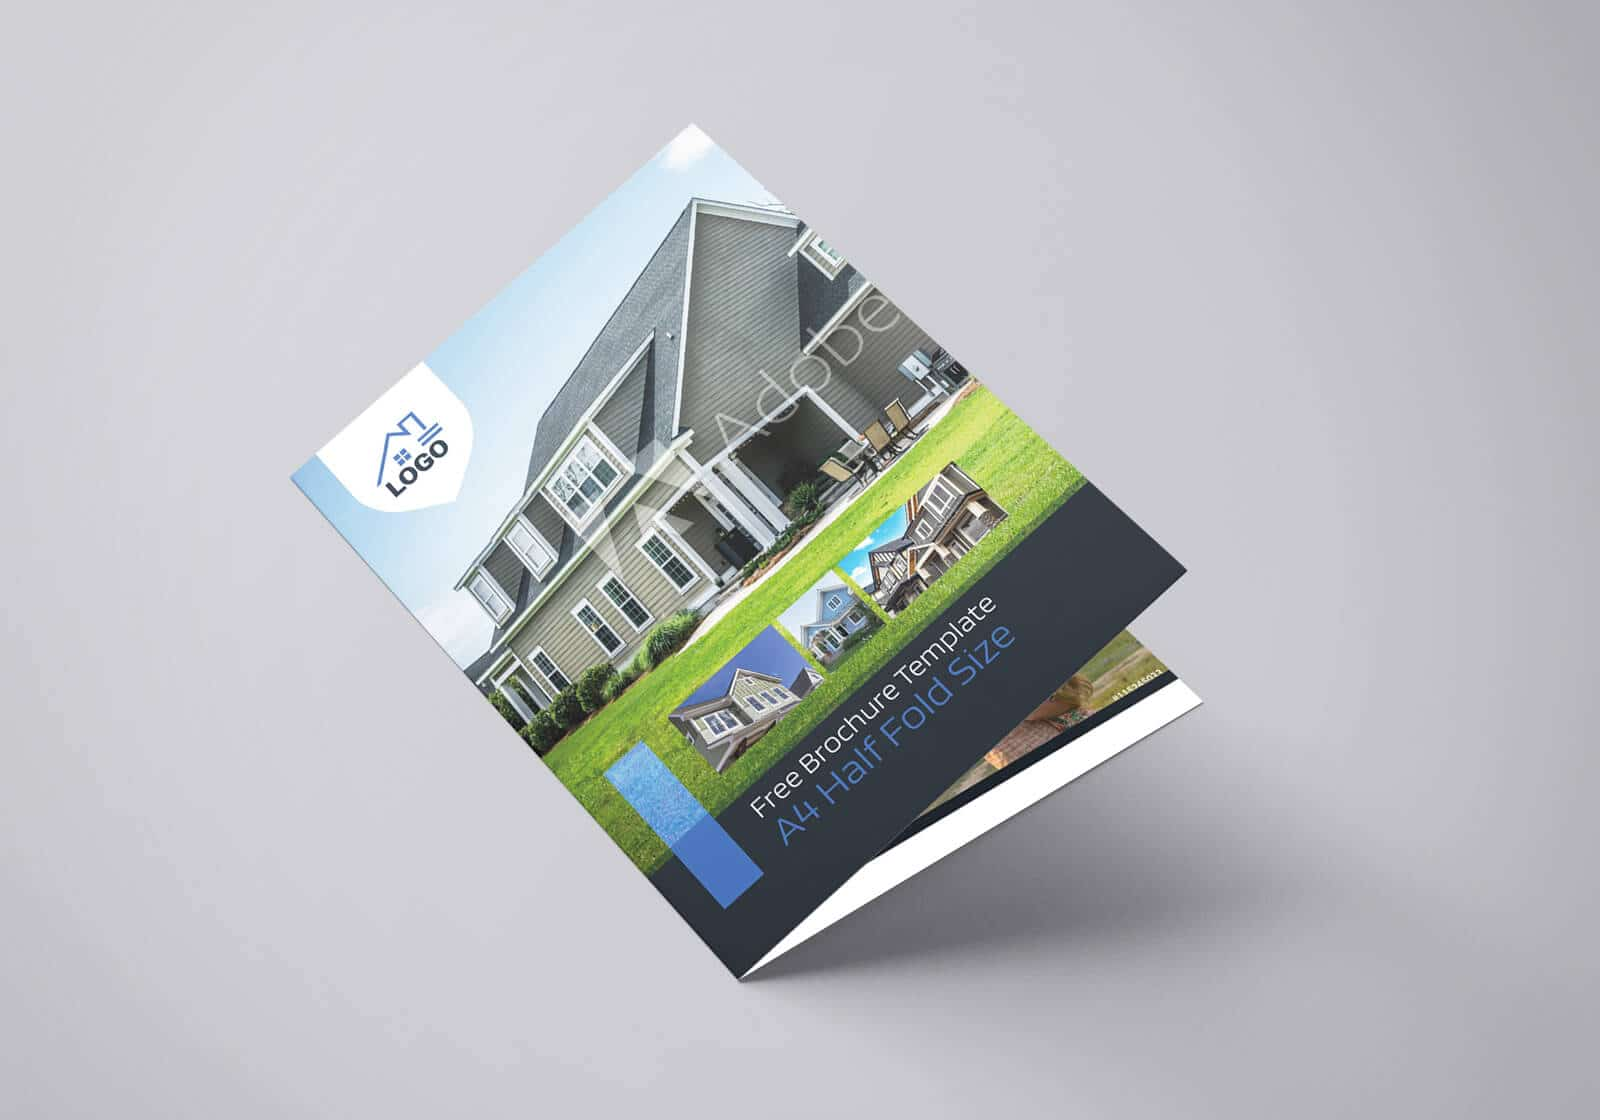 Residential Real Estate Half Fold Brochure Template 01 1